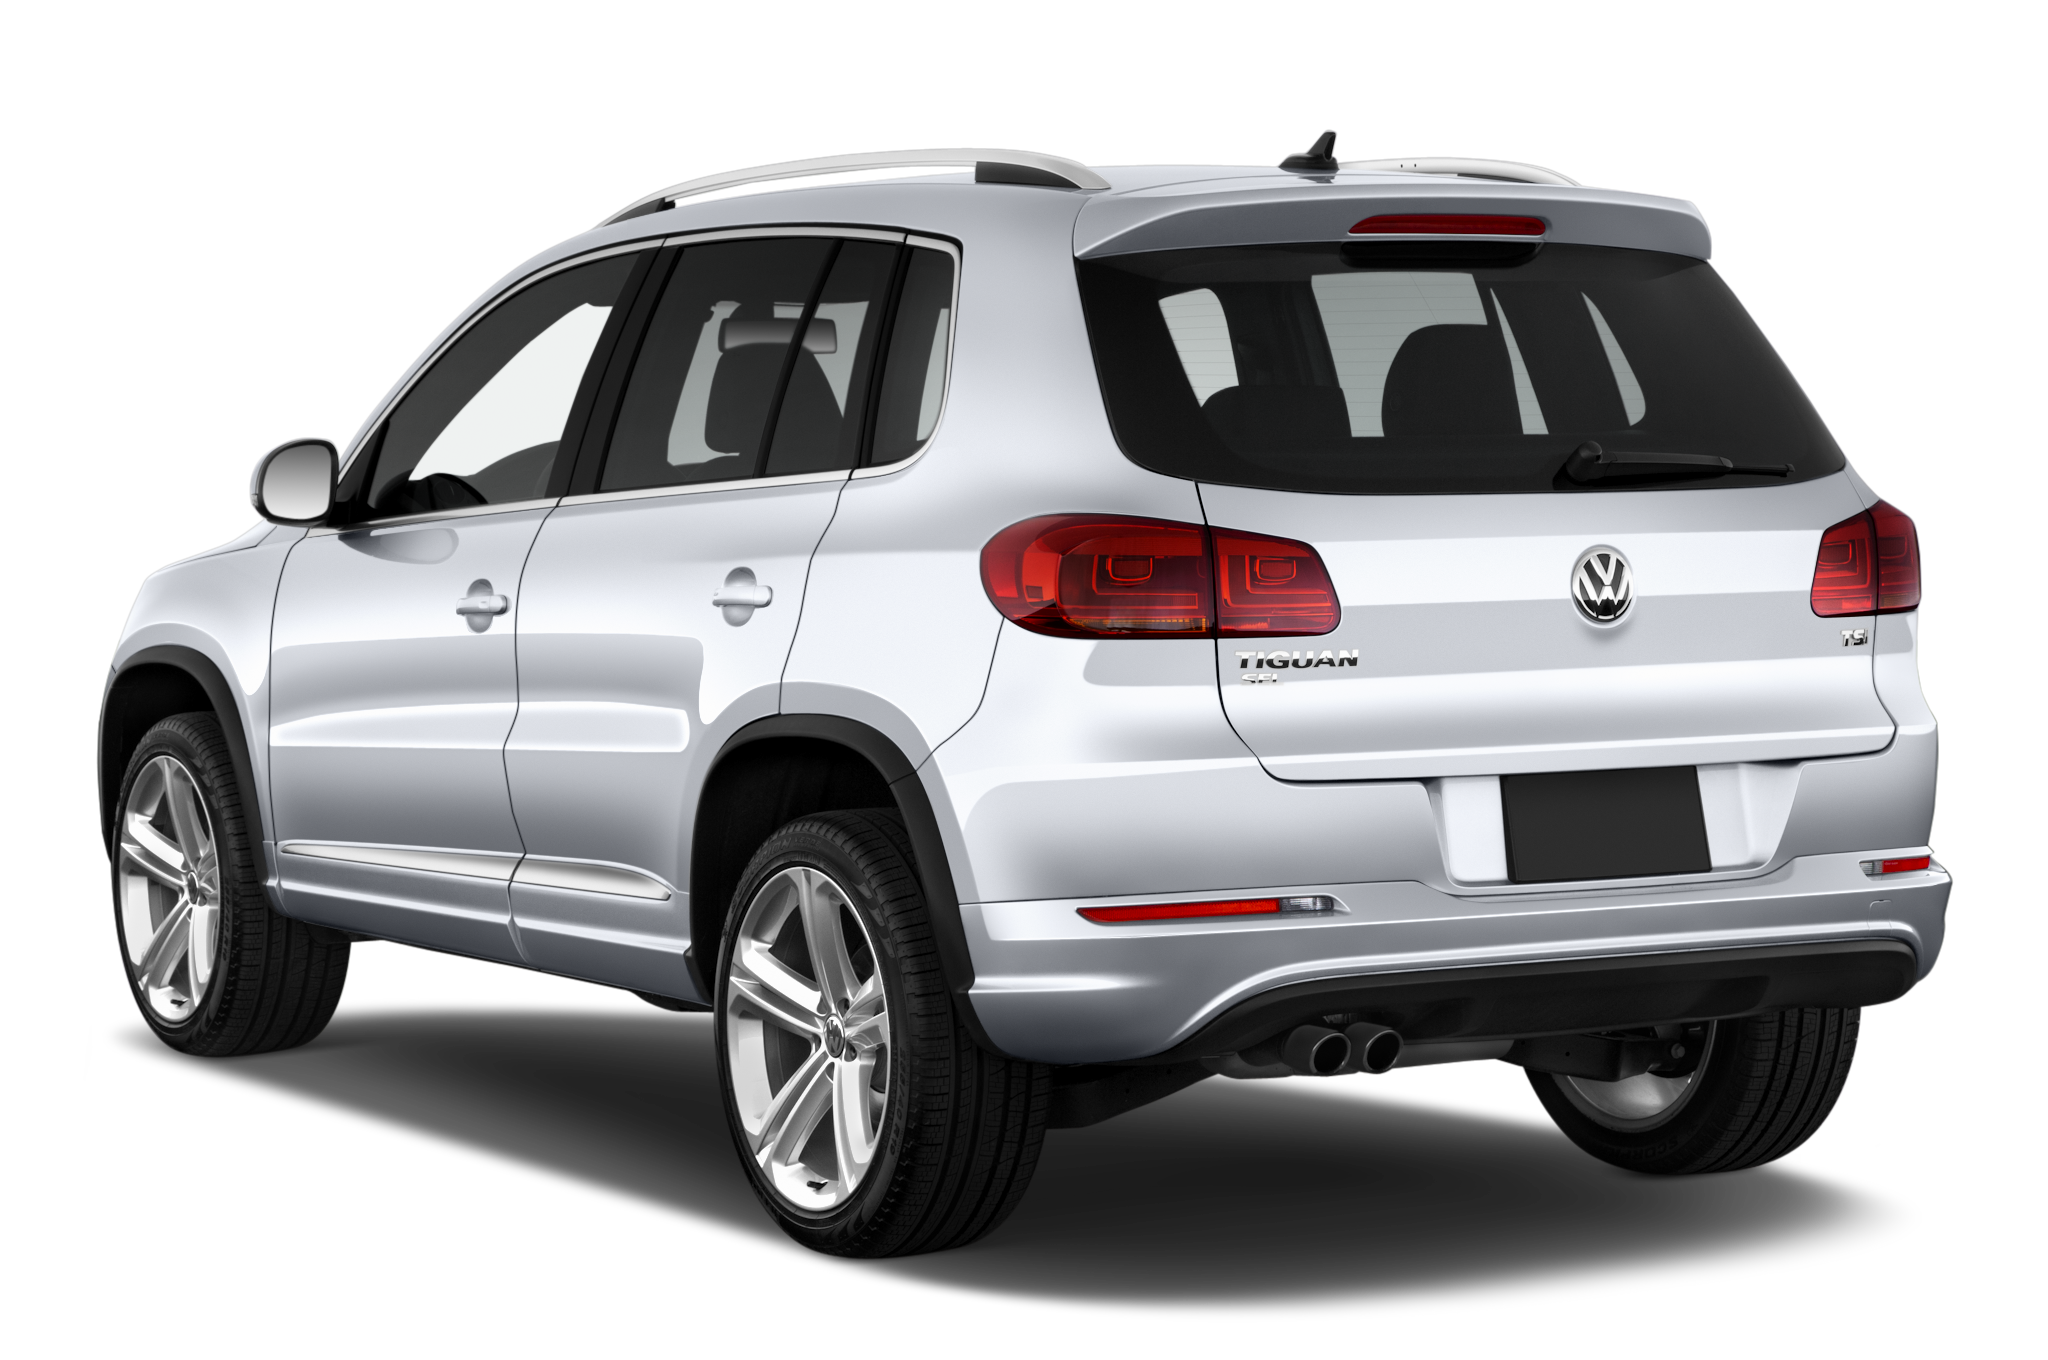 2016 volkswagen jetta gli refreshed with new look. Black Bedroom Furniture Sets. Home Design Ideas